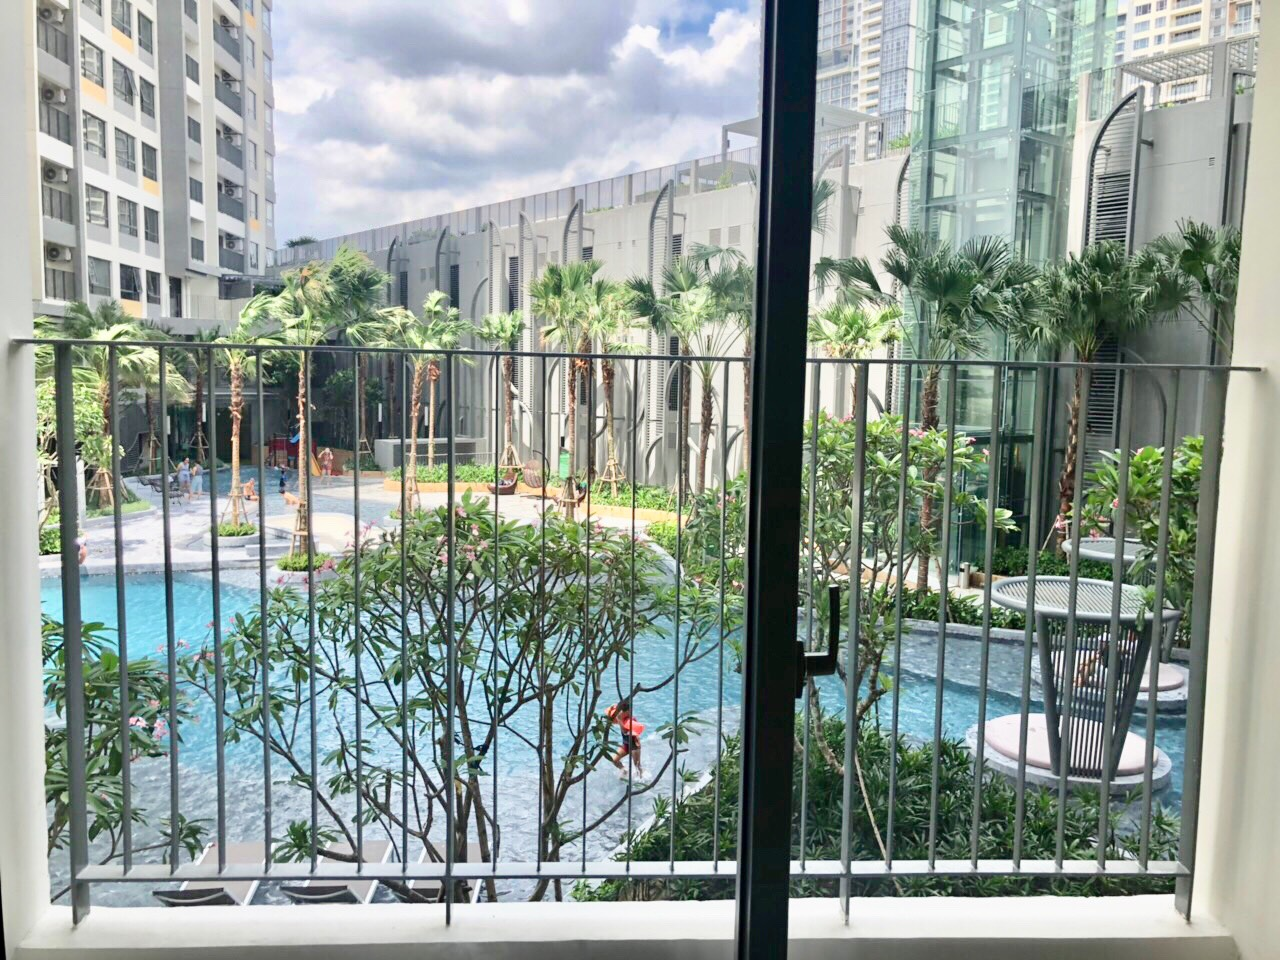 D229003 - Apartment for rent - Masteri An Phu - 1 Bedroom